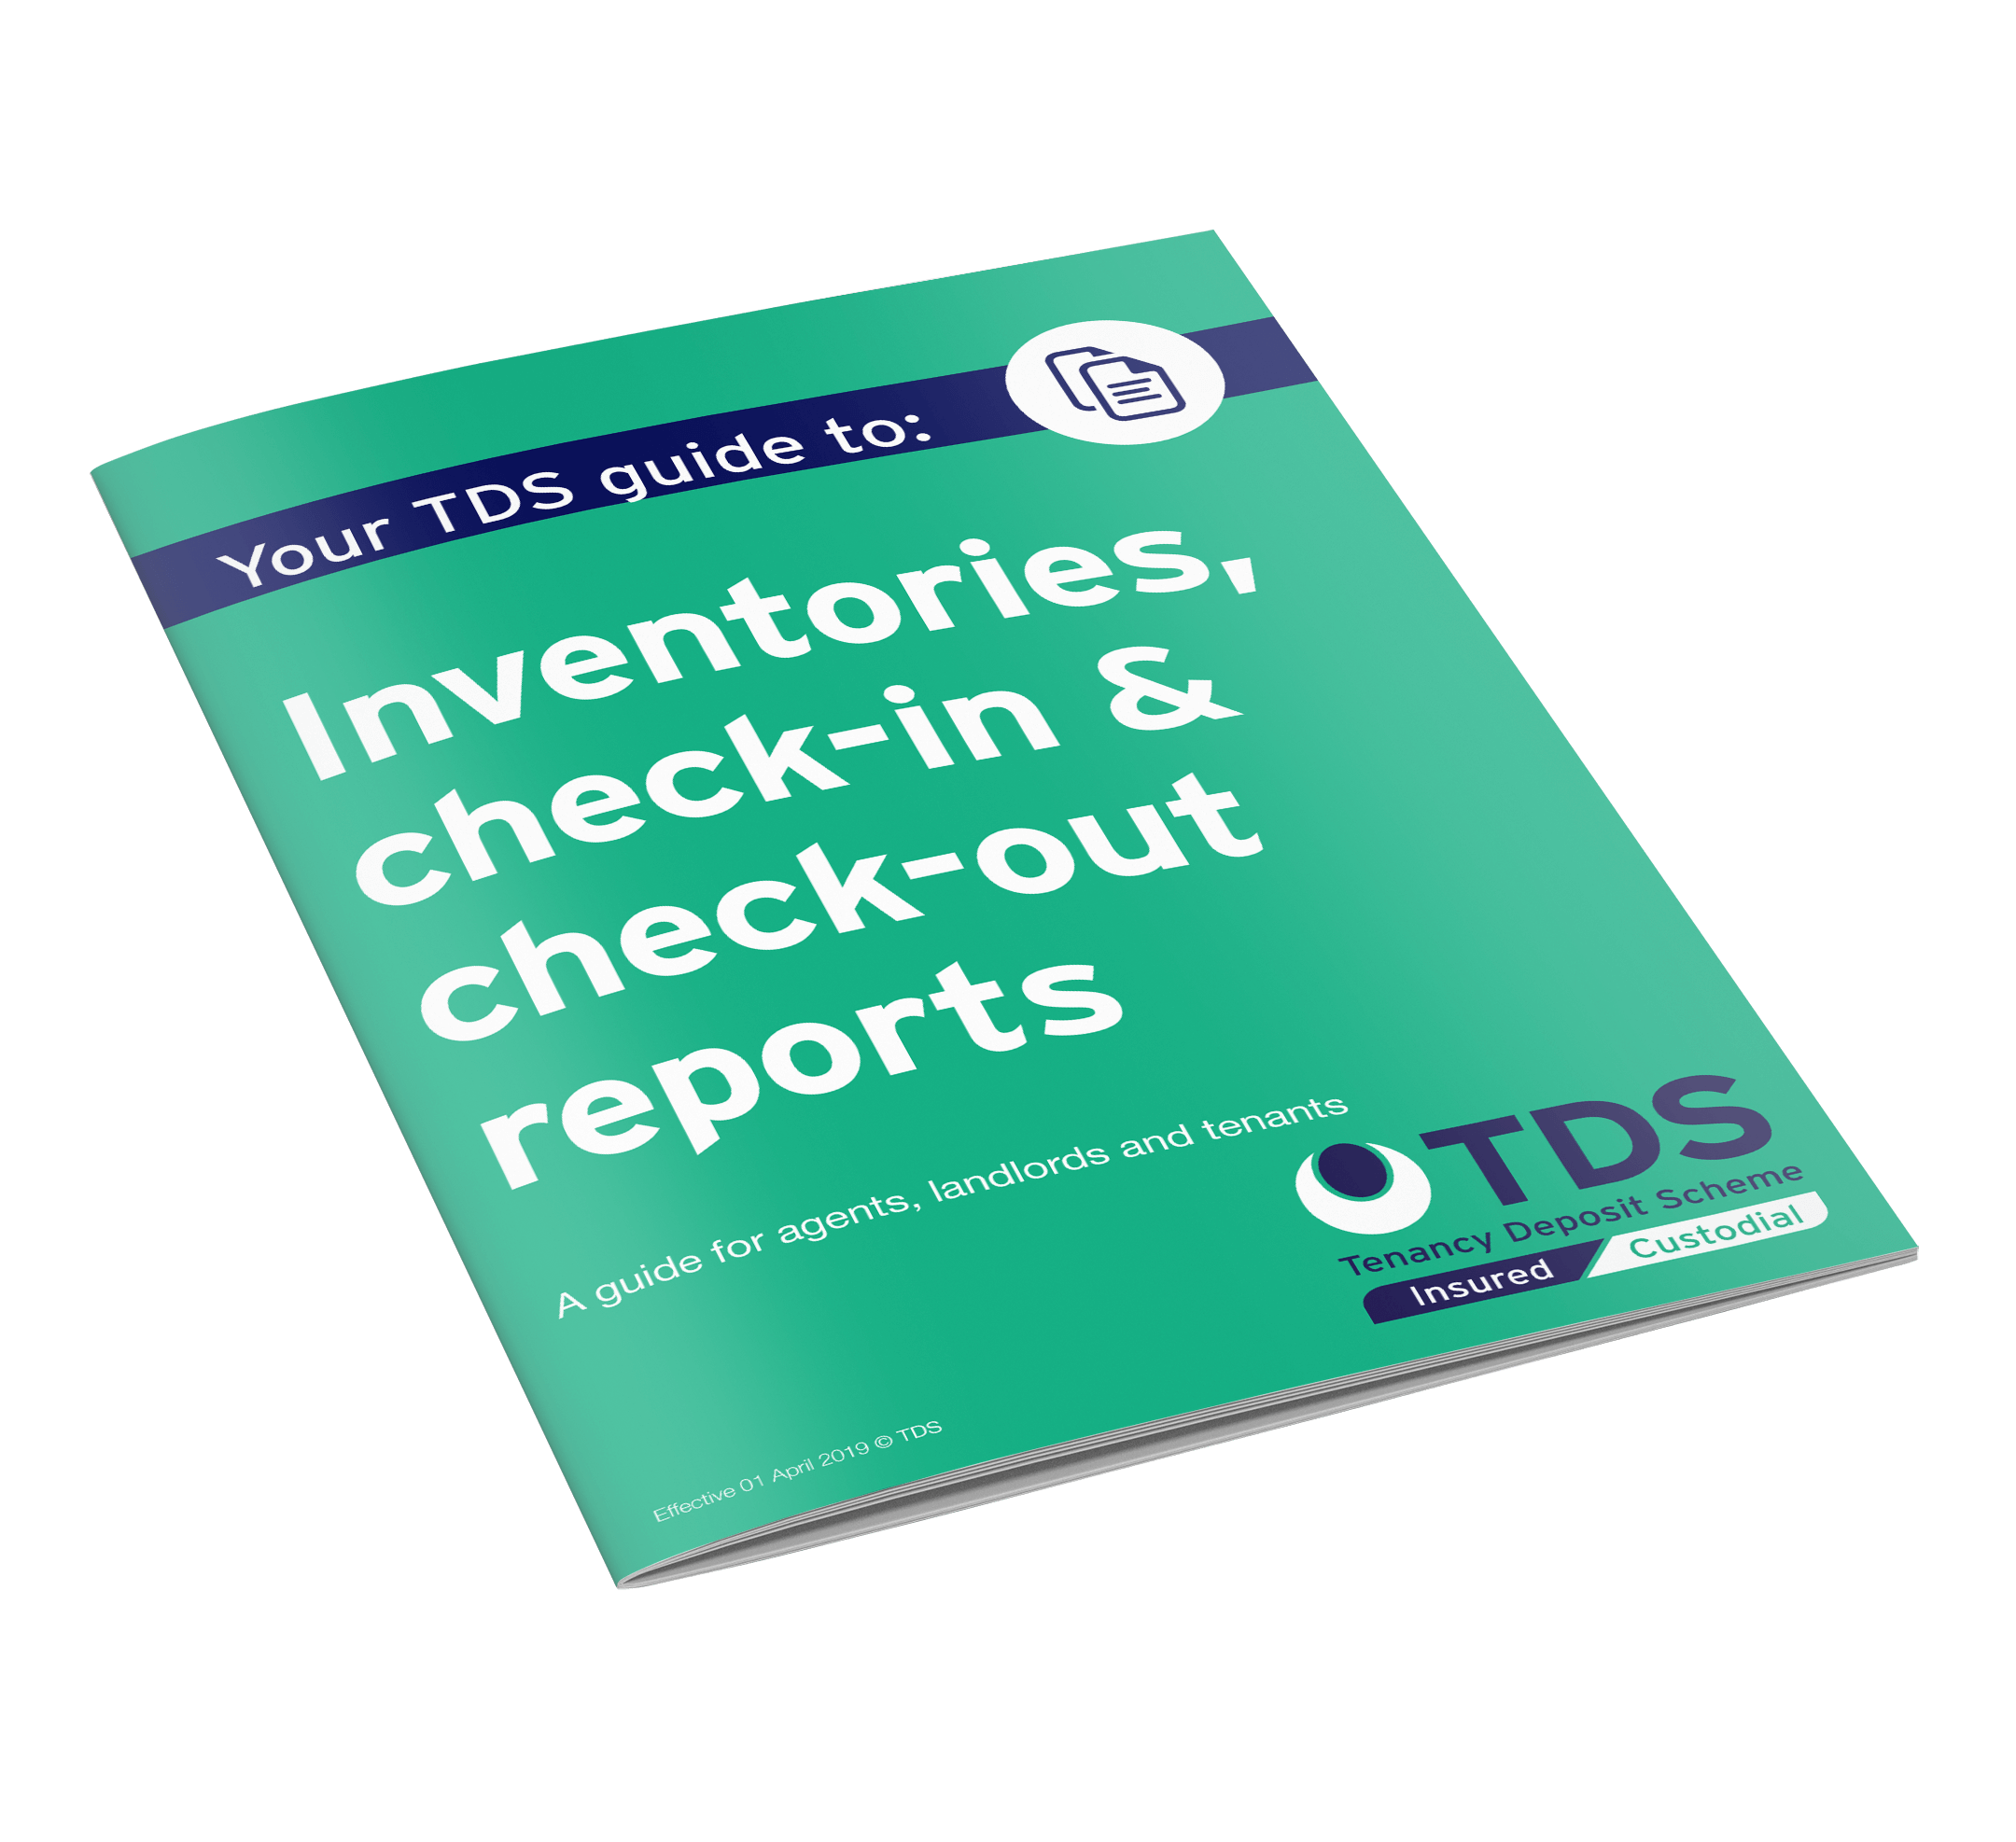 tds guide to inventories